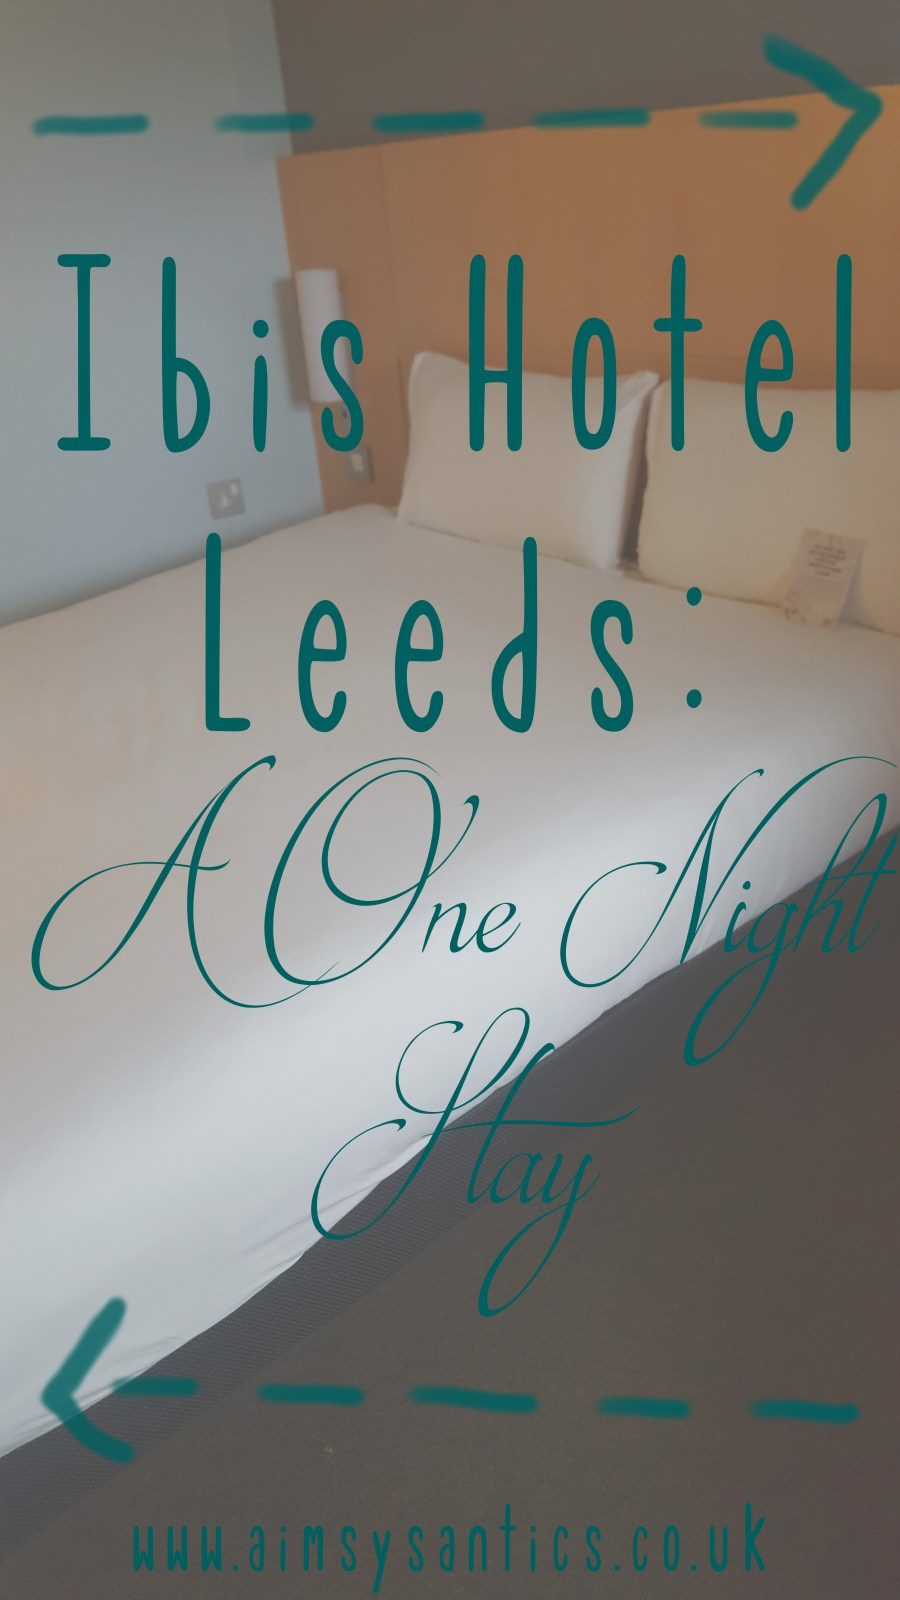 Image of the blog title page. Faded double bed picture from Ibis Hotel with blog title written over it.